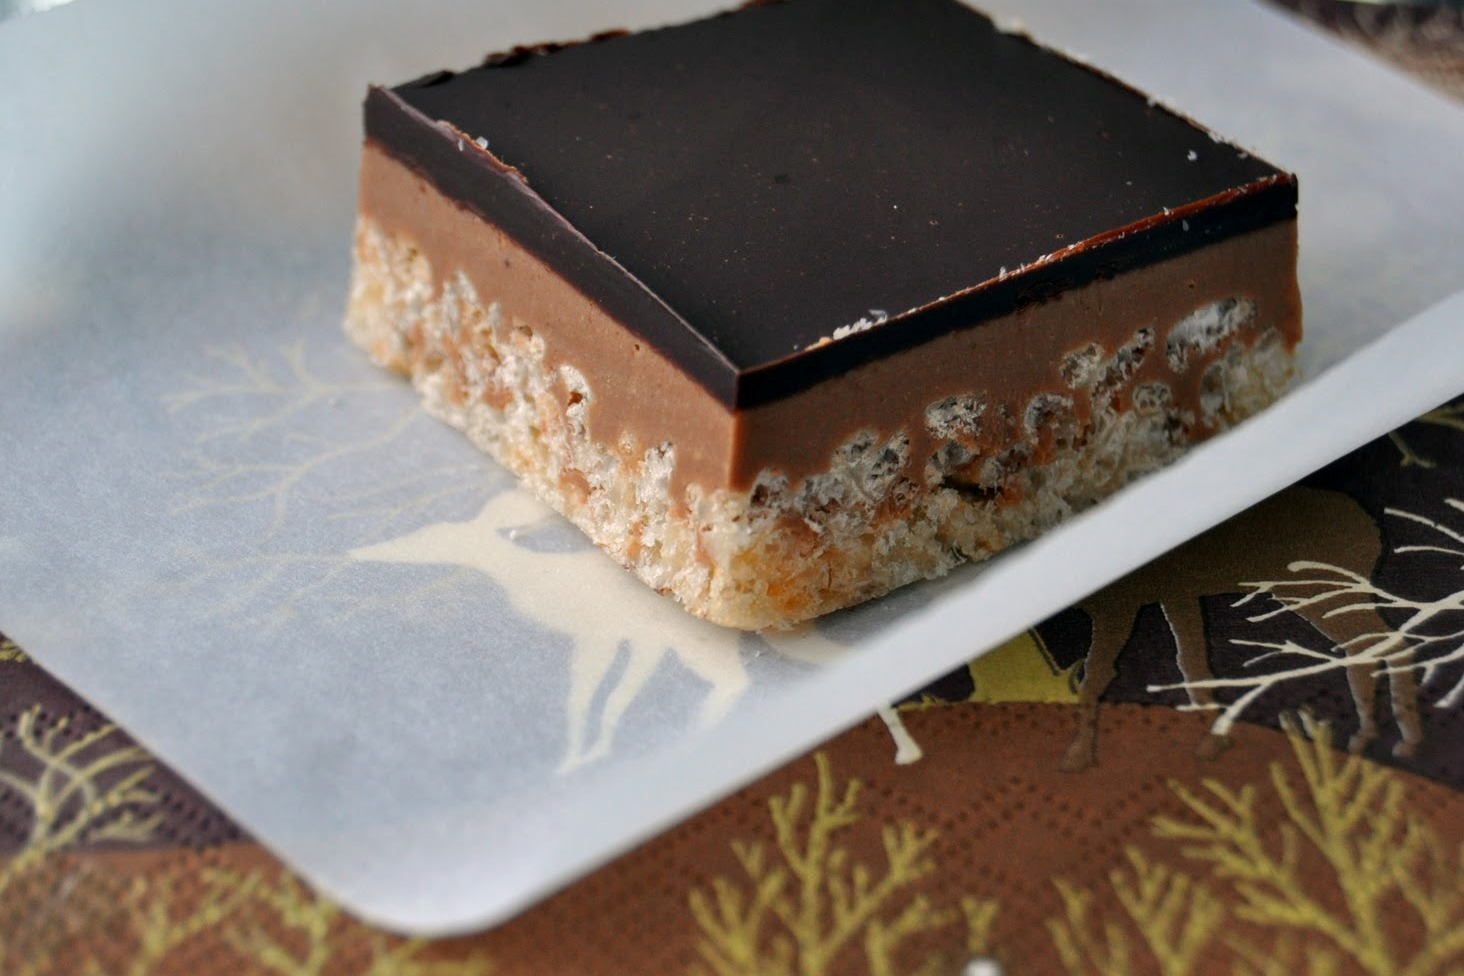 Impeccable Taste: Peanut Butter Crispy Bars